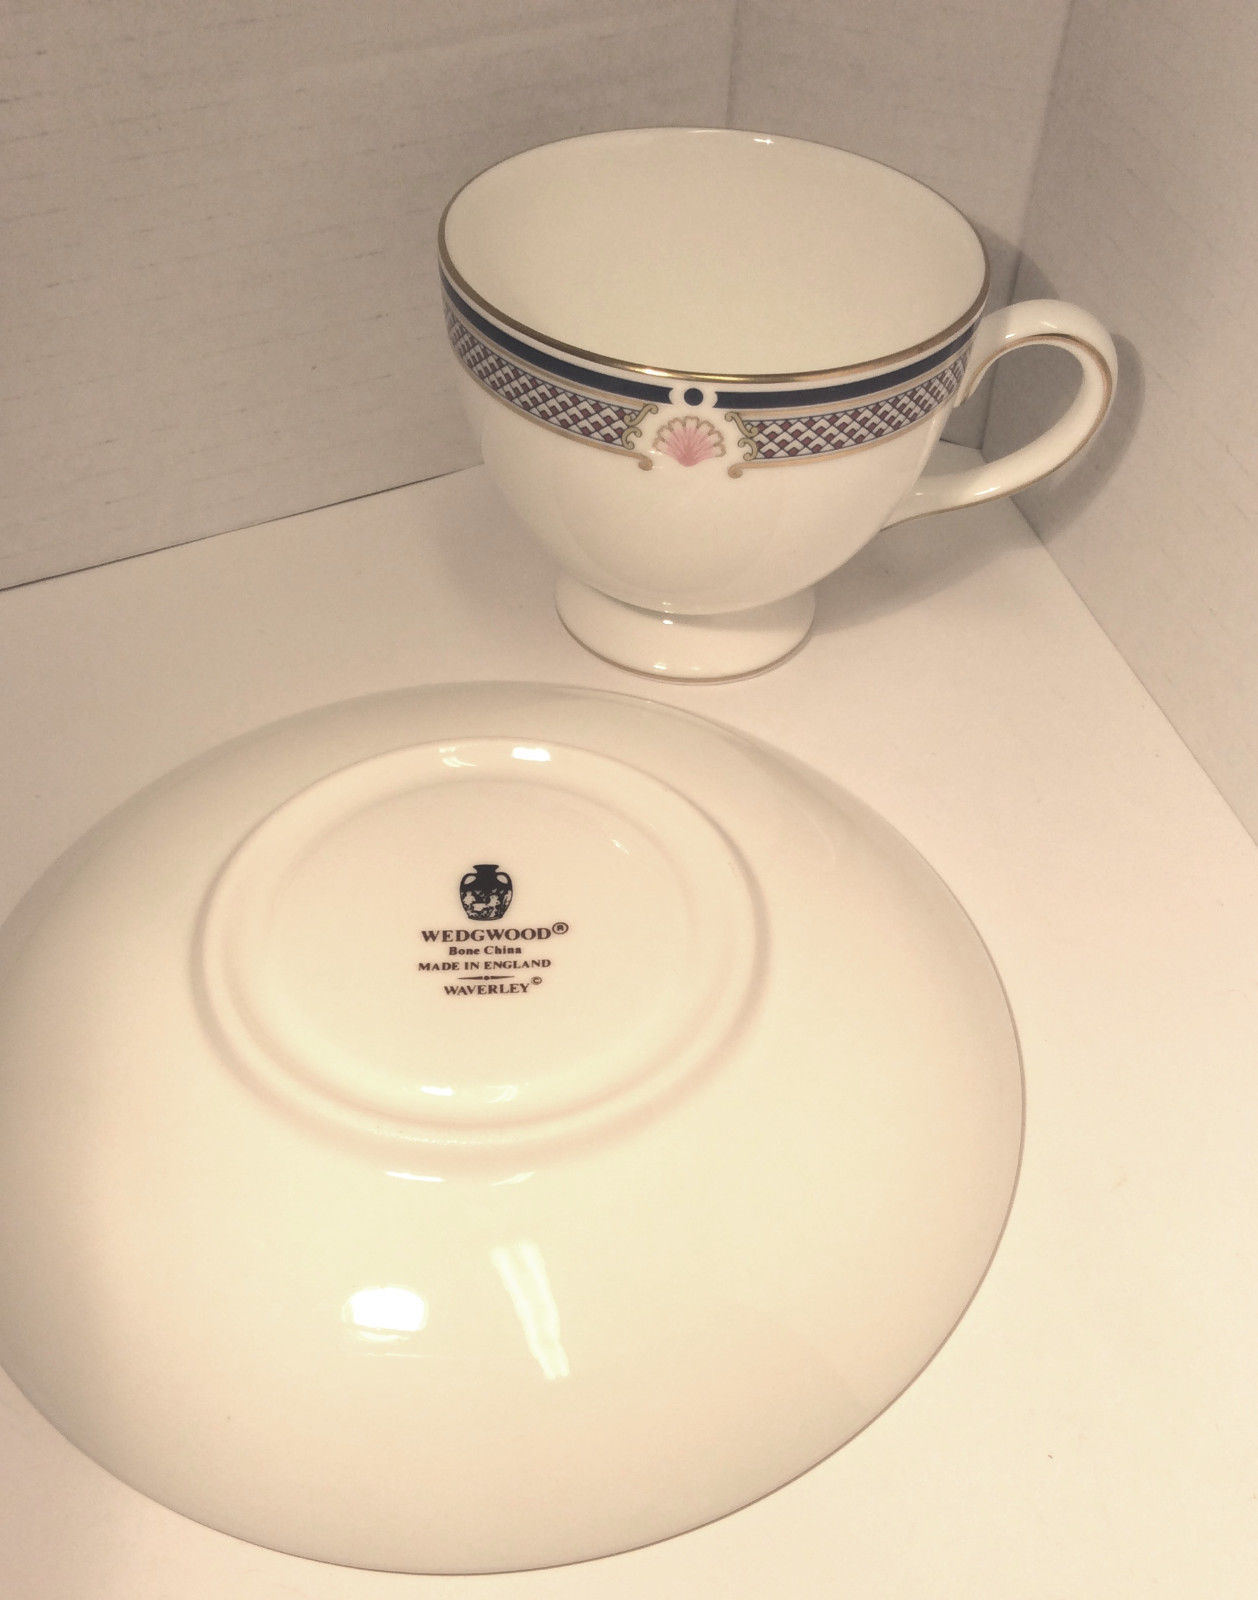 Wedgwood Waverley China TEA CUP & SAUCER, Excellent conditon - Nice Gift